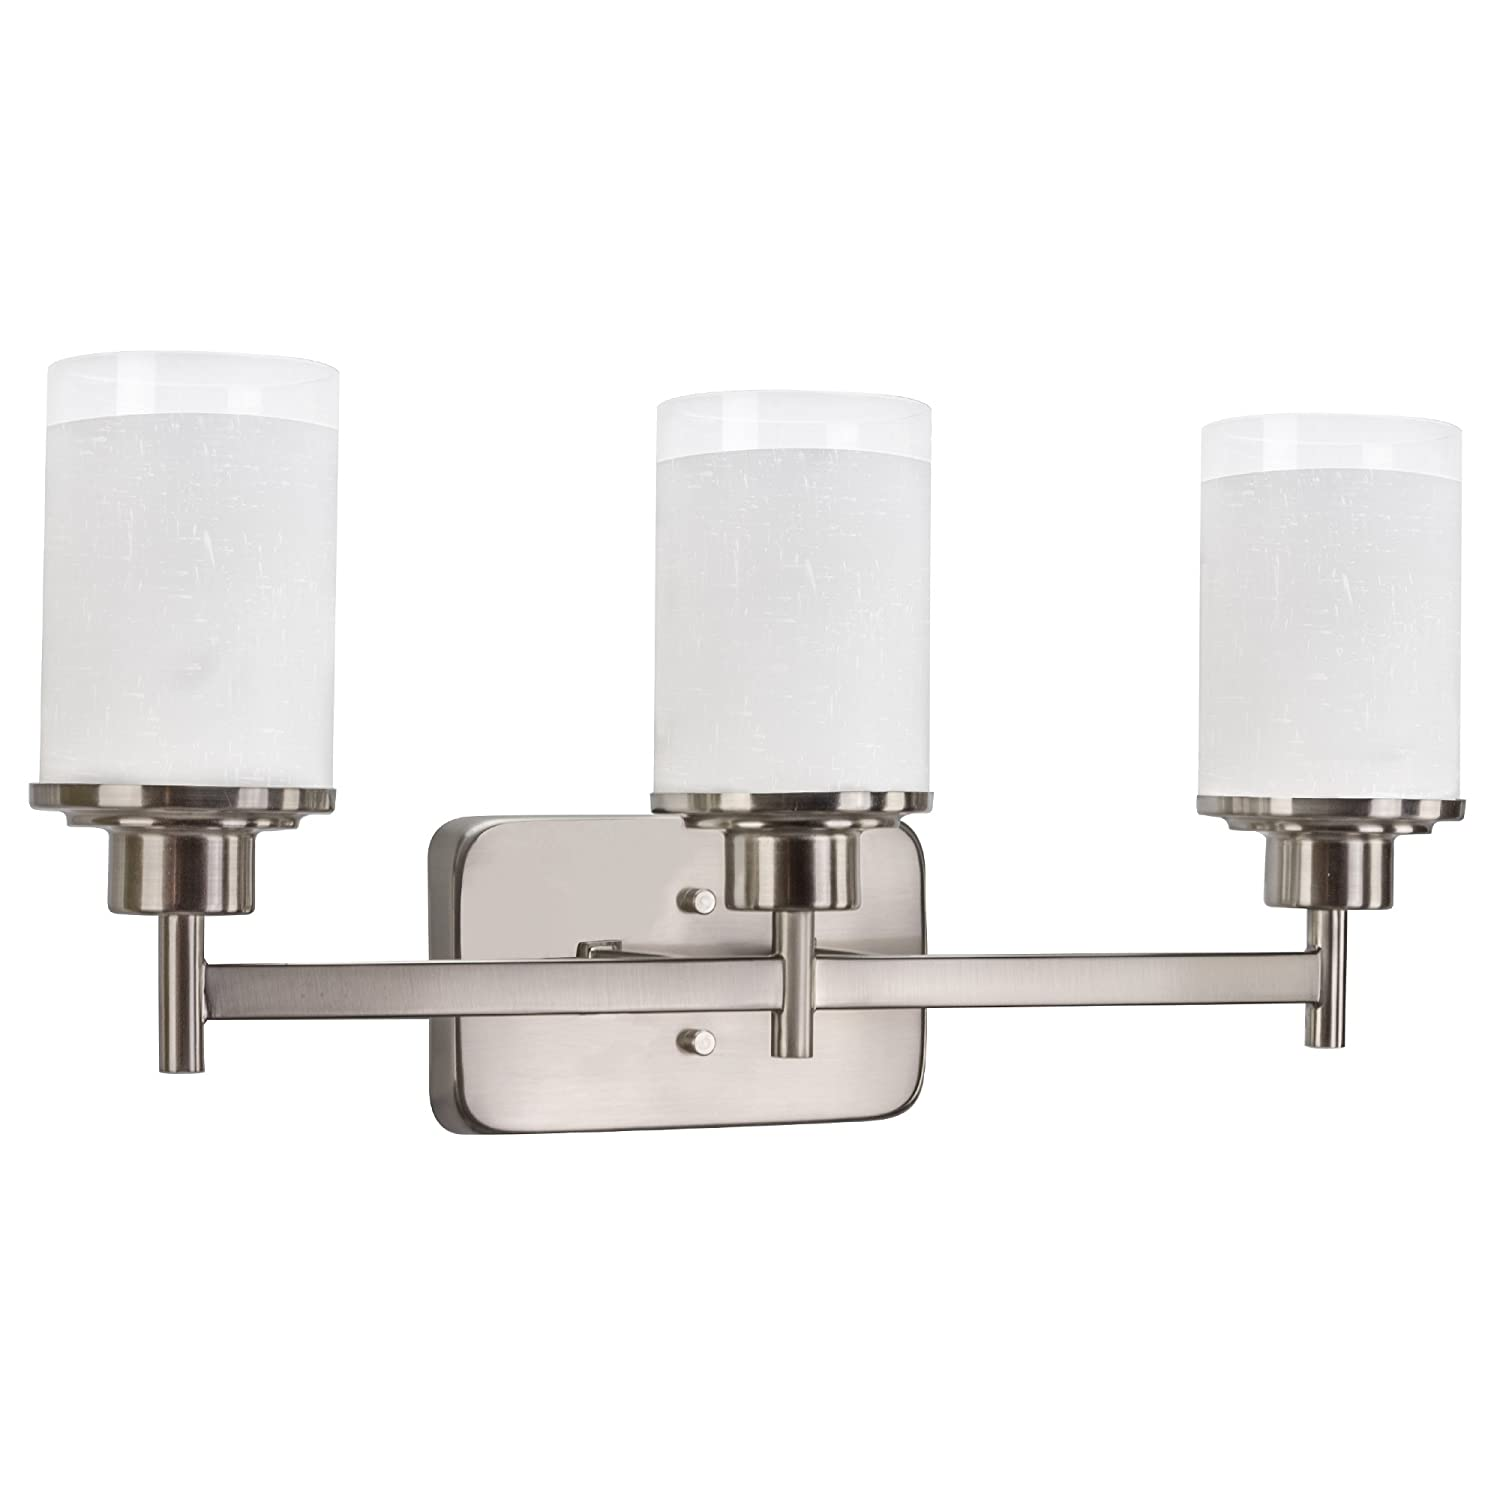 "Polished Nickel Bathroom Vanity Light: Windsor 22"" 3-Light Modern Vanity/Bathroom Fixture"